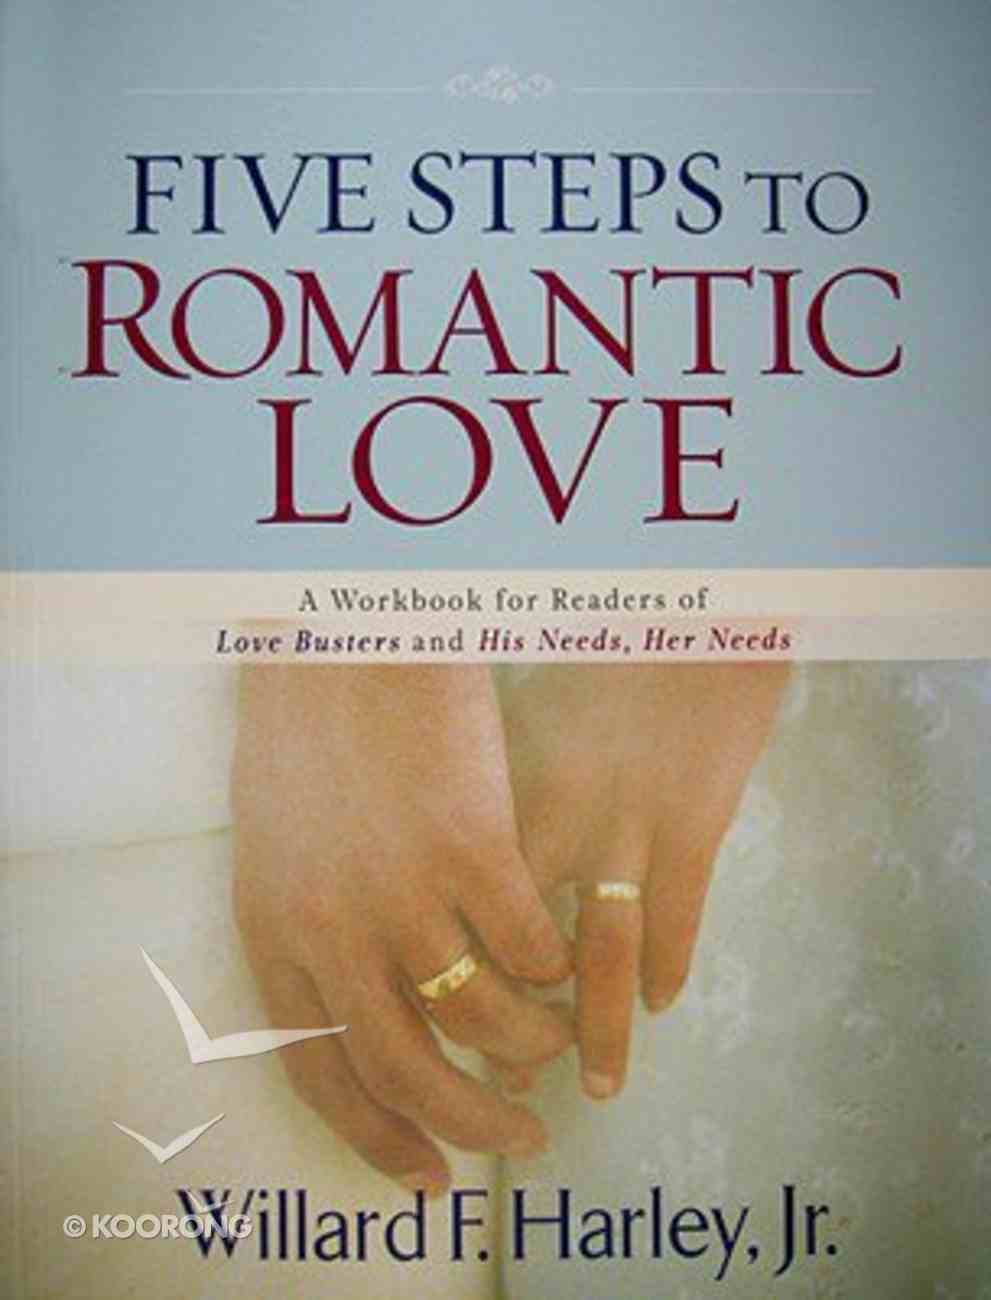 Five Steps to Romantic Love: A Workbook For Readers of Love Busters and His Needs, Her Needs Paperback